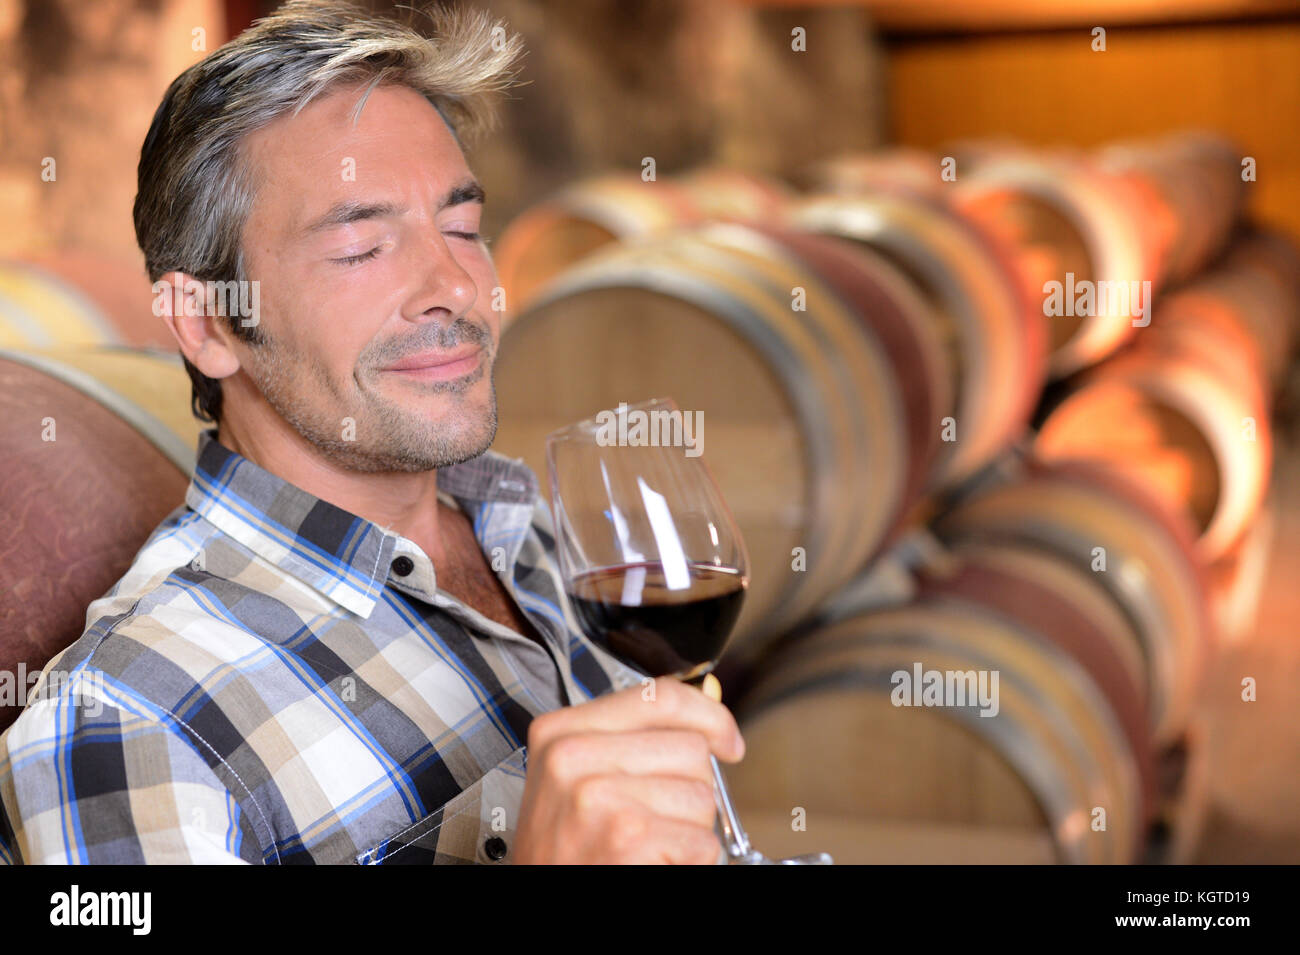 Winemaker enjoying the smell of red wine - Stock Image